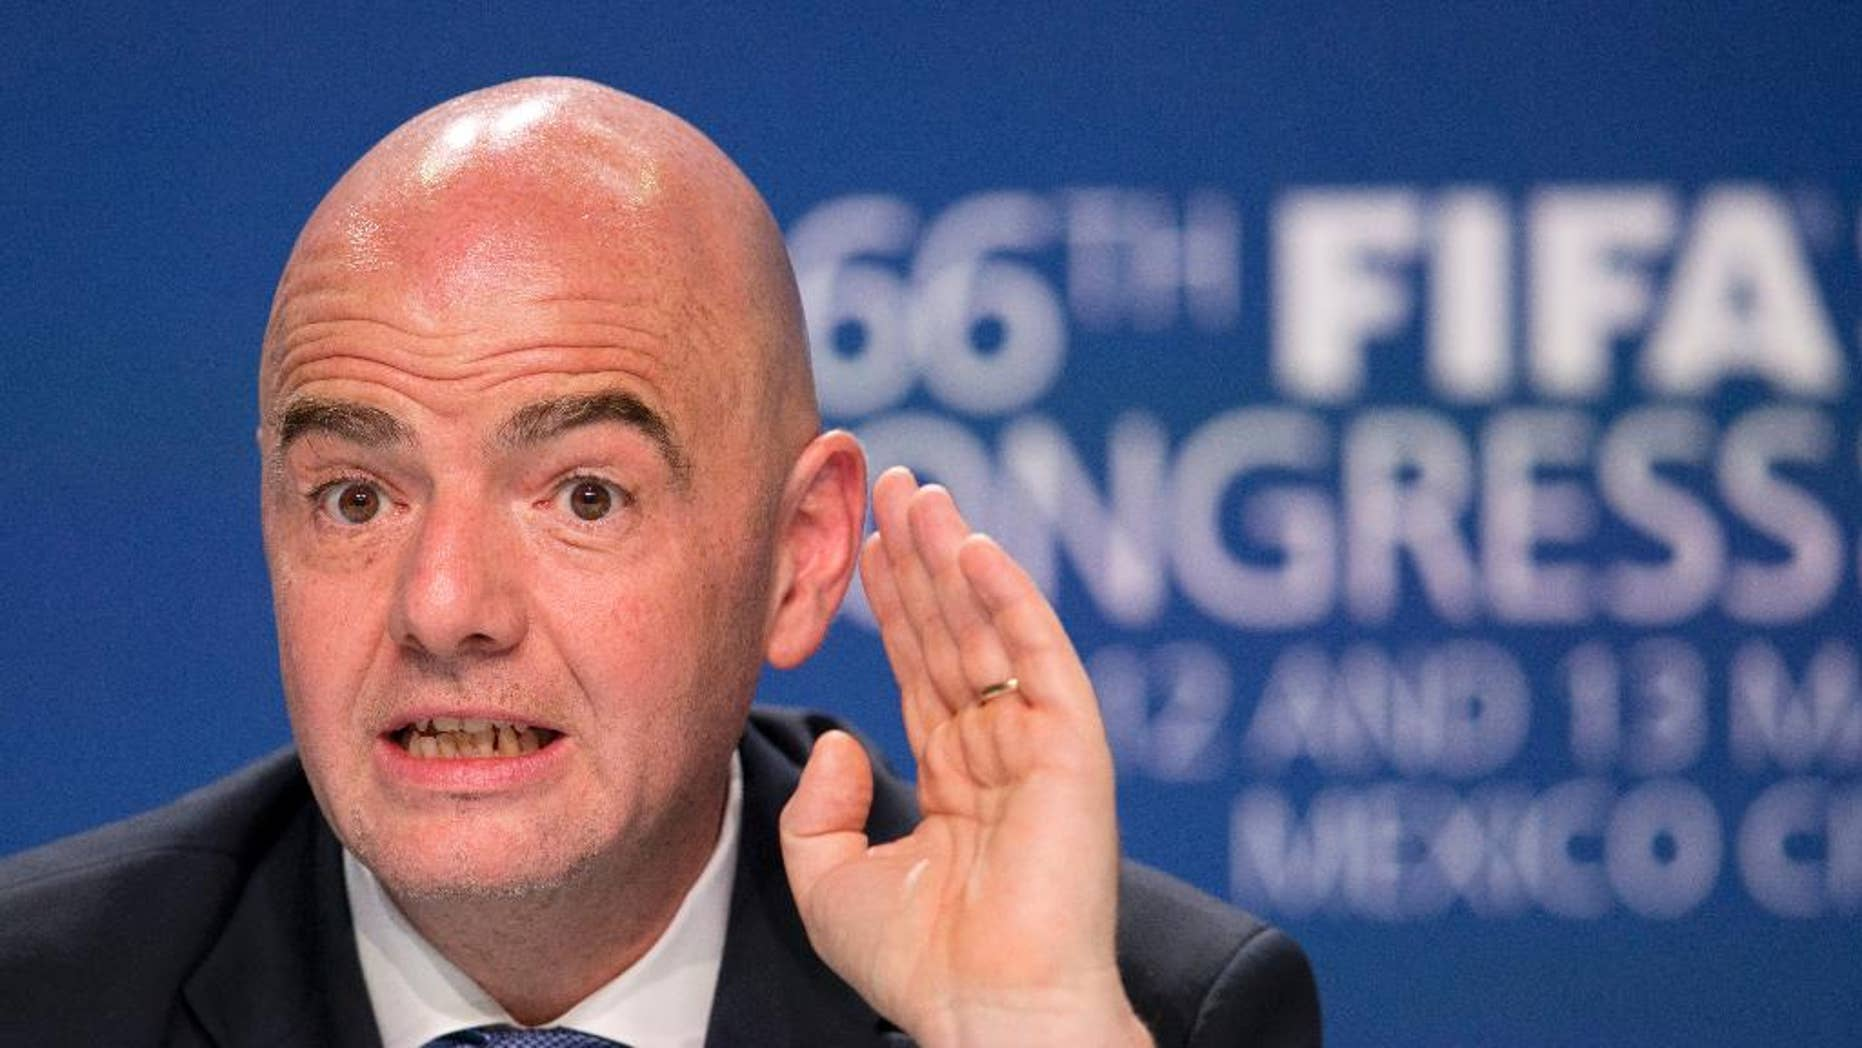 FIFA President Gianni Infantino gives a press conference following the closing of the 66th FIFA Congress in Mexico City, Friday, May 13, 2016. FIFA's corruption crisis was declared to be over by Infantino on Friday as the scandal-battered governing body broke new ground by appointing a Senegalese United Nations official as its first female and first non-European secretary general. (AP Photo/Rebecca Blackwell)